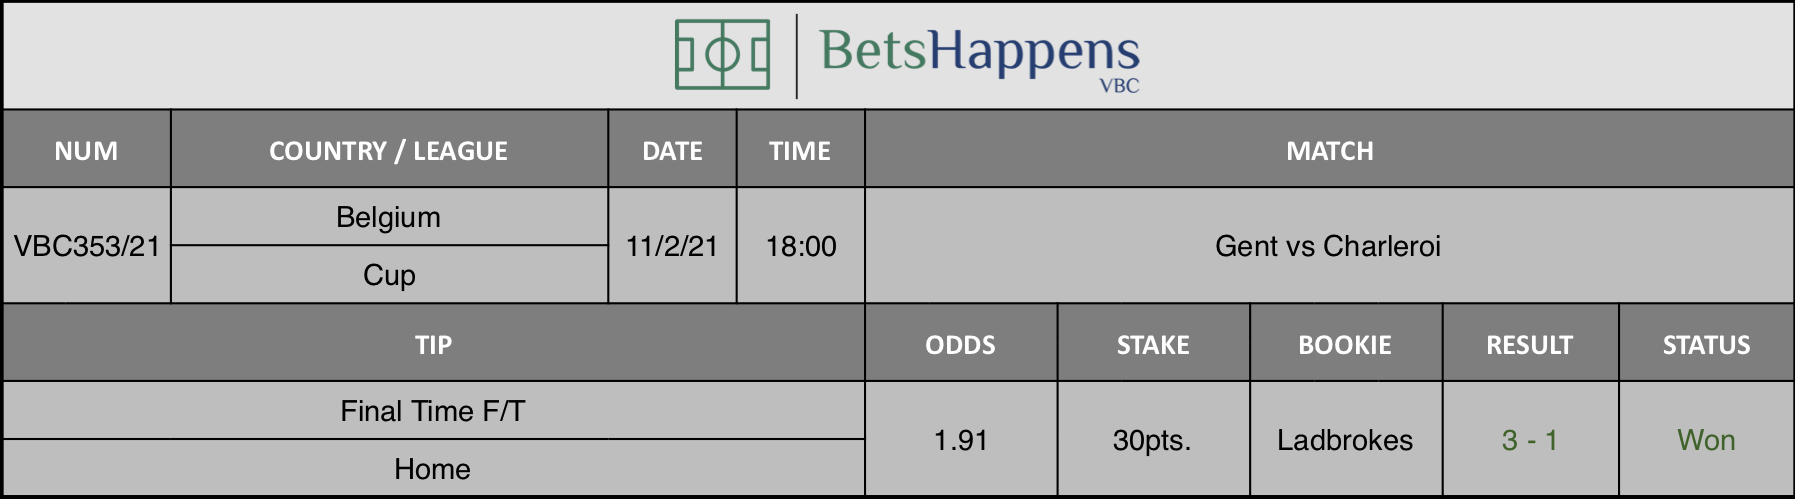 Results of our tip for the Gent vs Charleroi match where Final Time F/T Home is recommended.